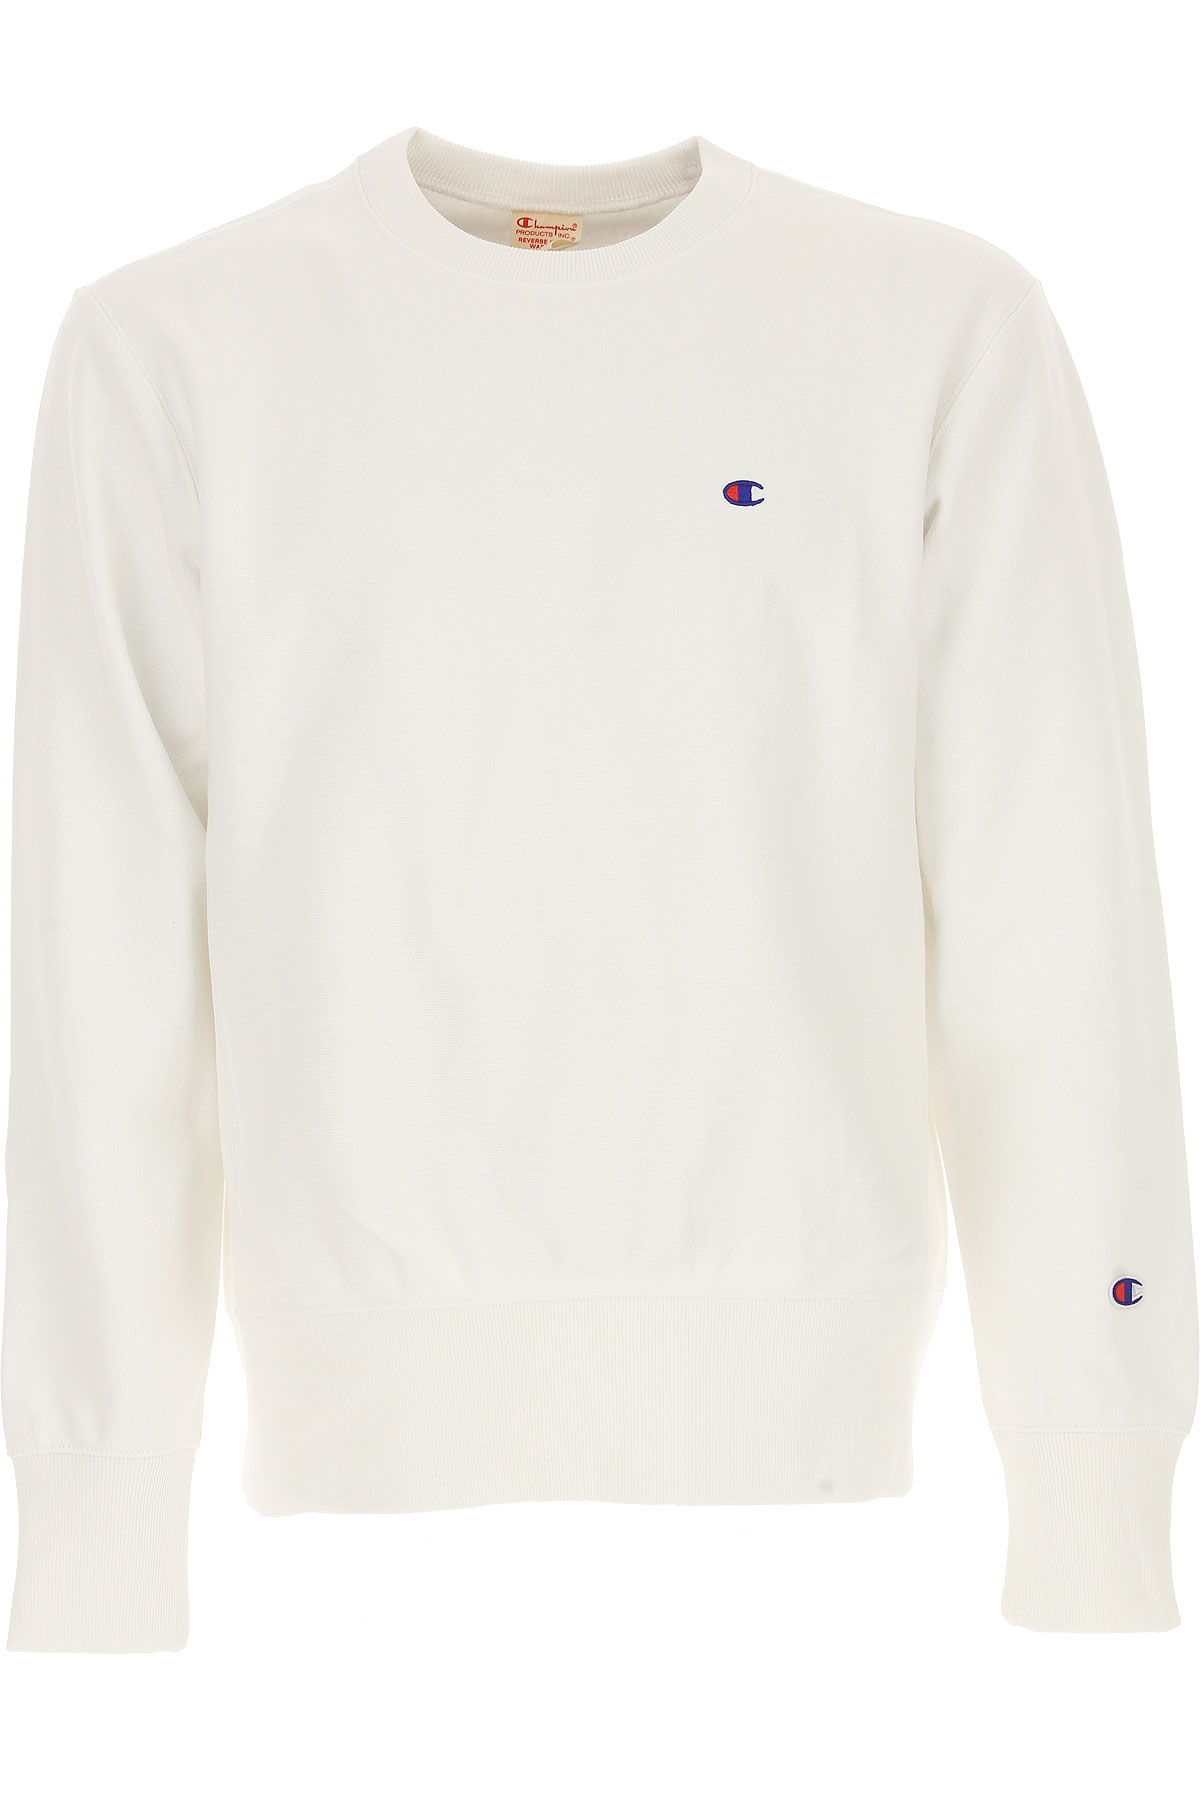 Champion Sweatshirt for Men, White, Cotton, 2017, M S XL USA-478724